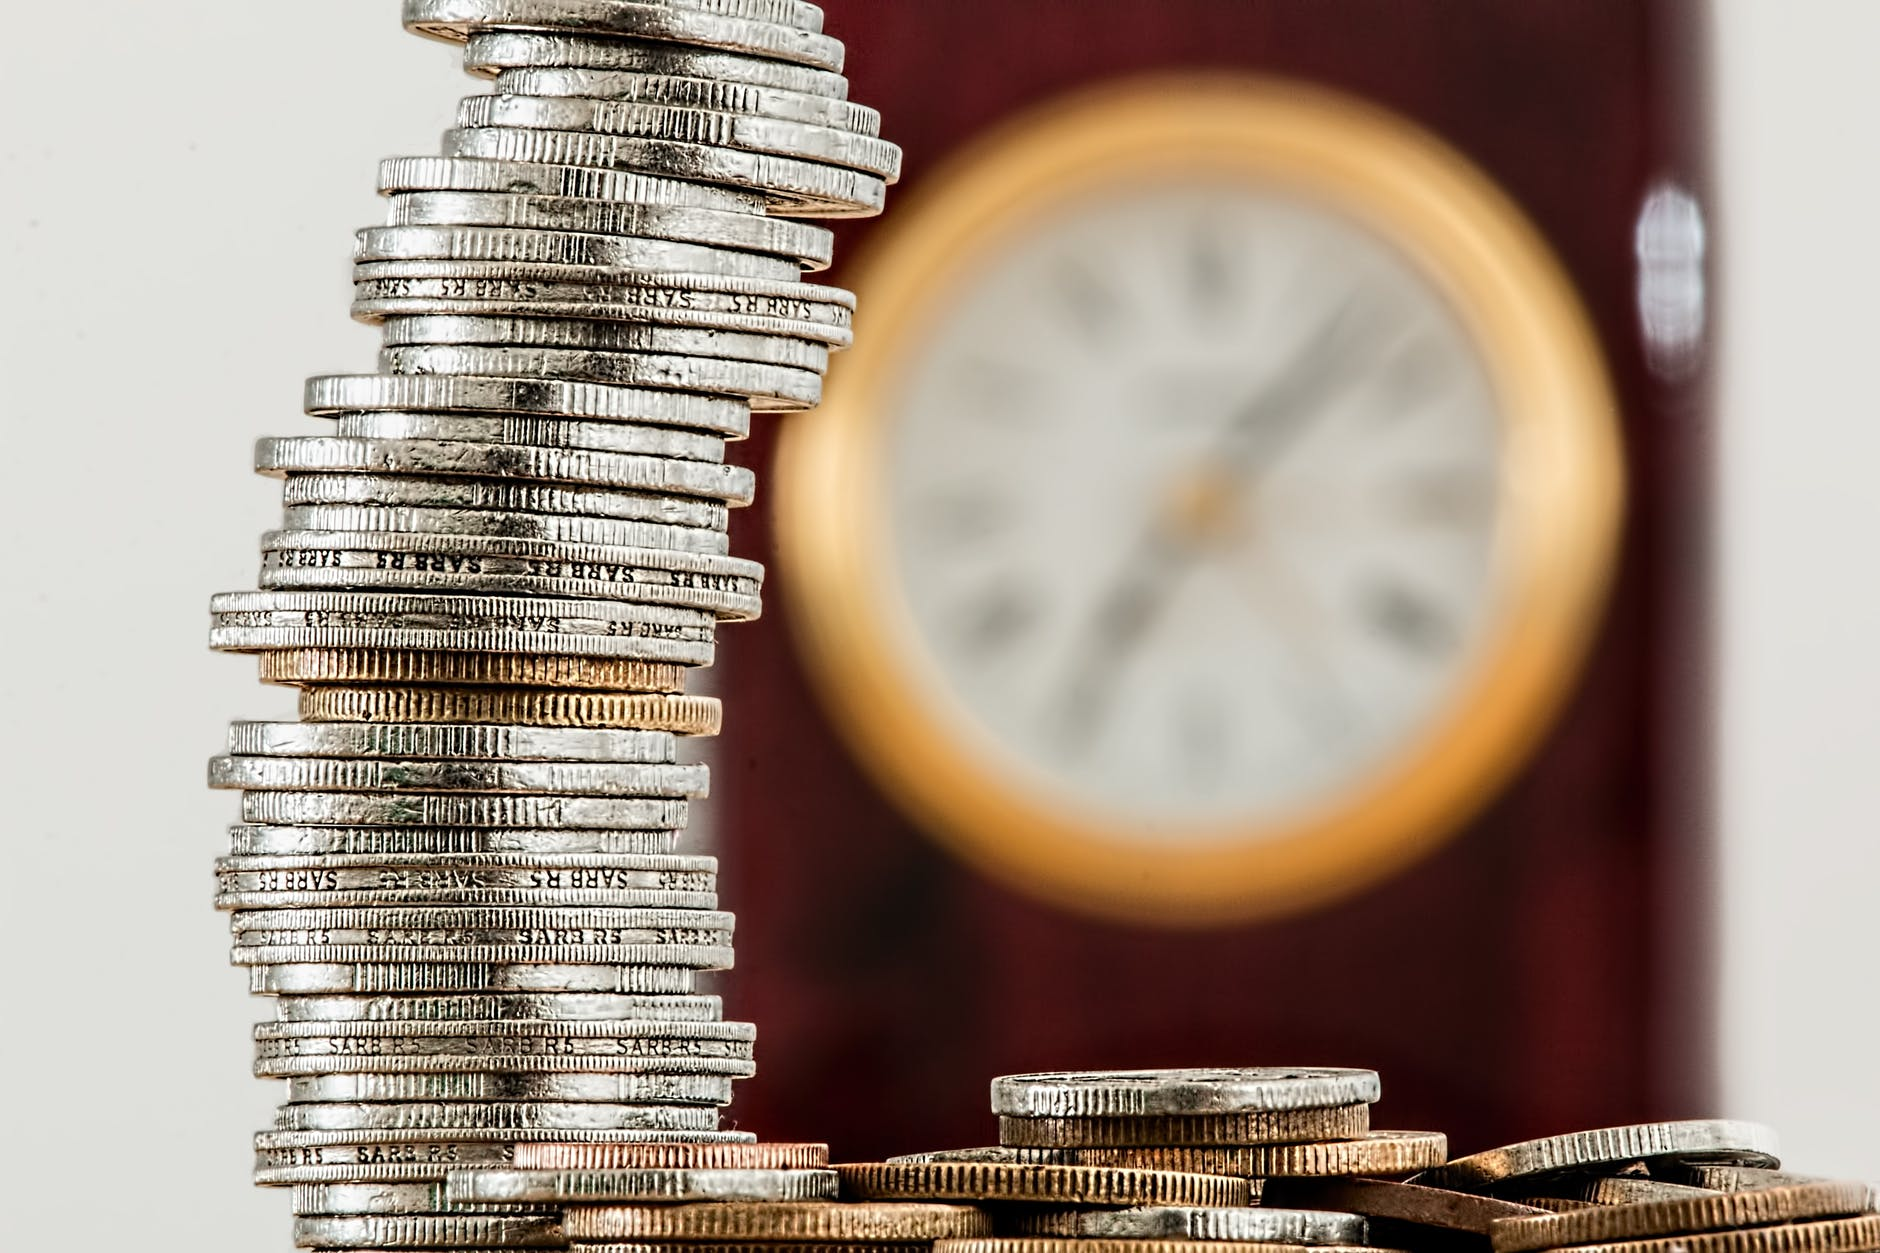 A stack of coins on top of each other with a blurry clock in the background.